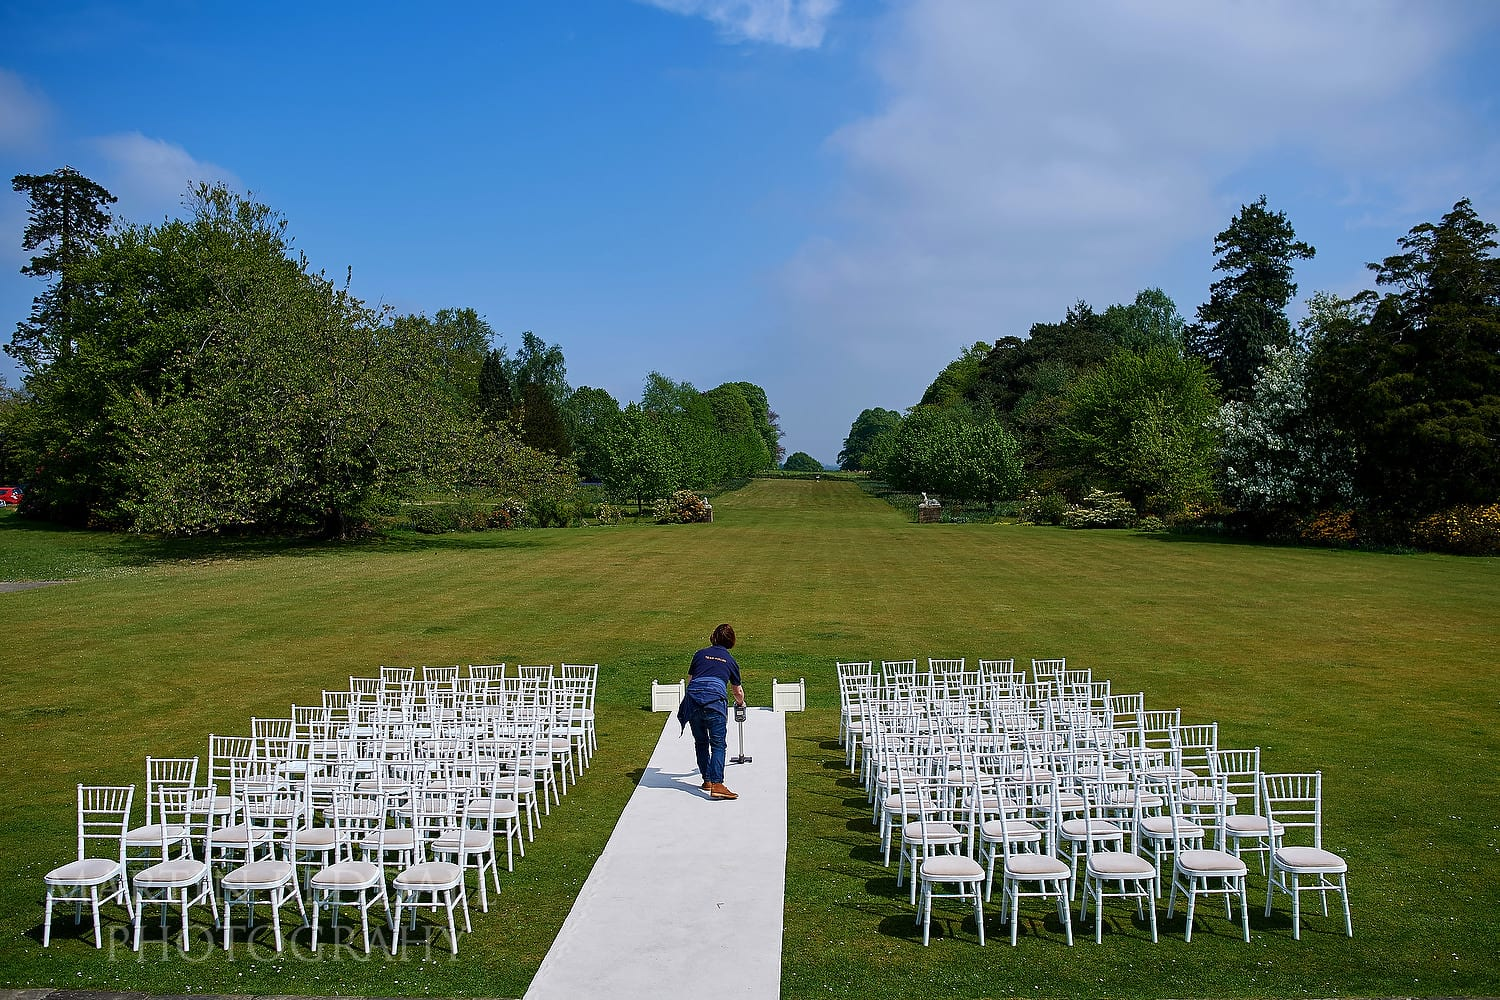 Staff getting the outdoor wedding ready at Buxted Park